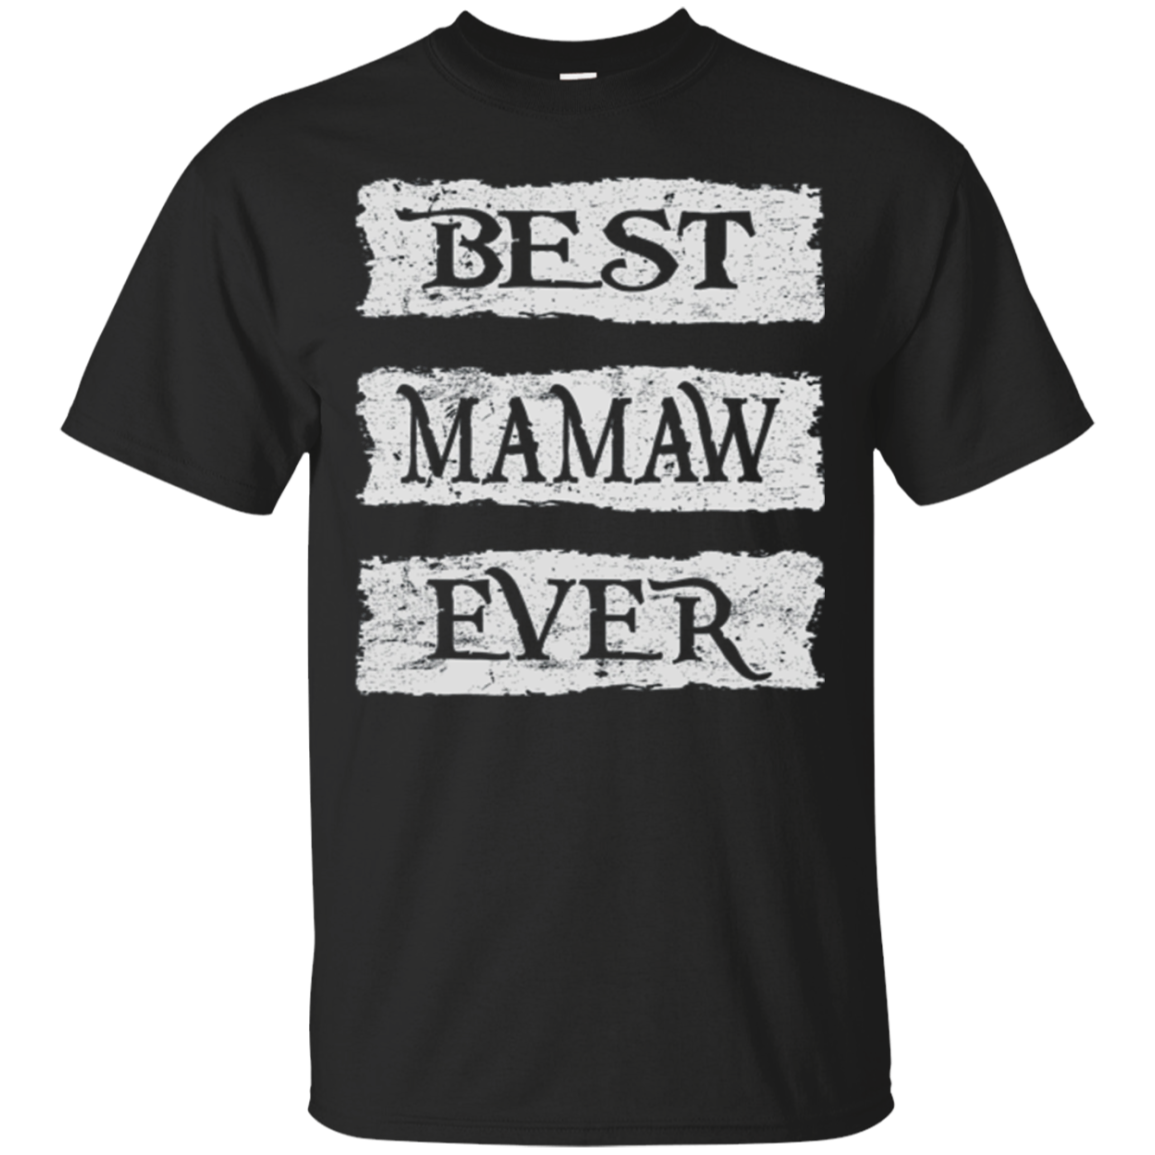 Best Mamaw Ever Cool Gifts Mothers & Fathers Day Tshirt